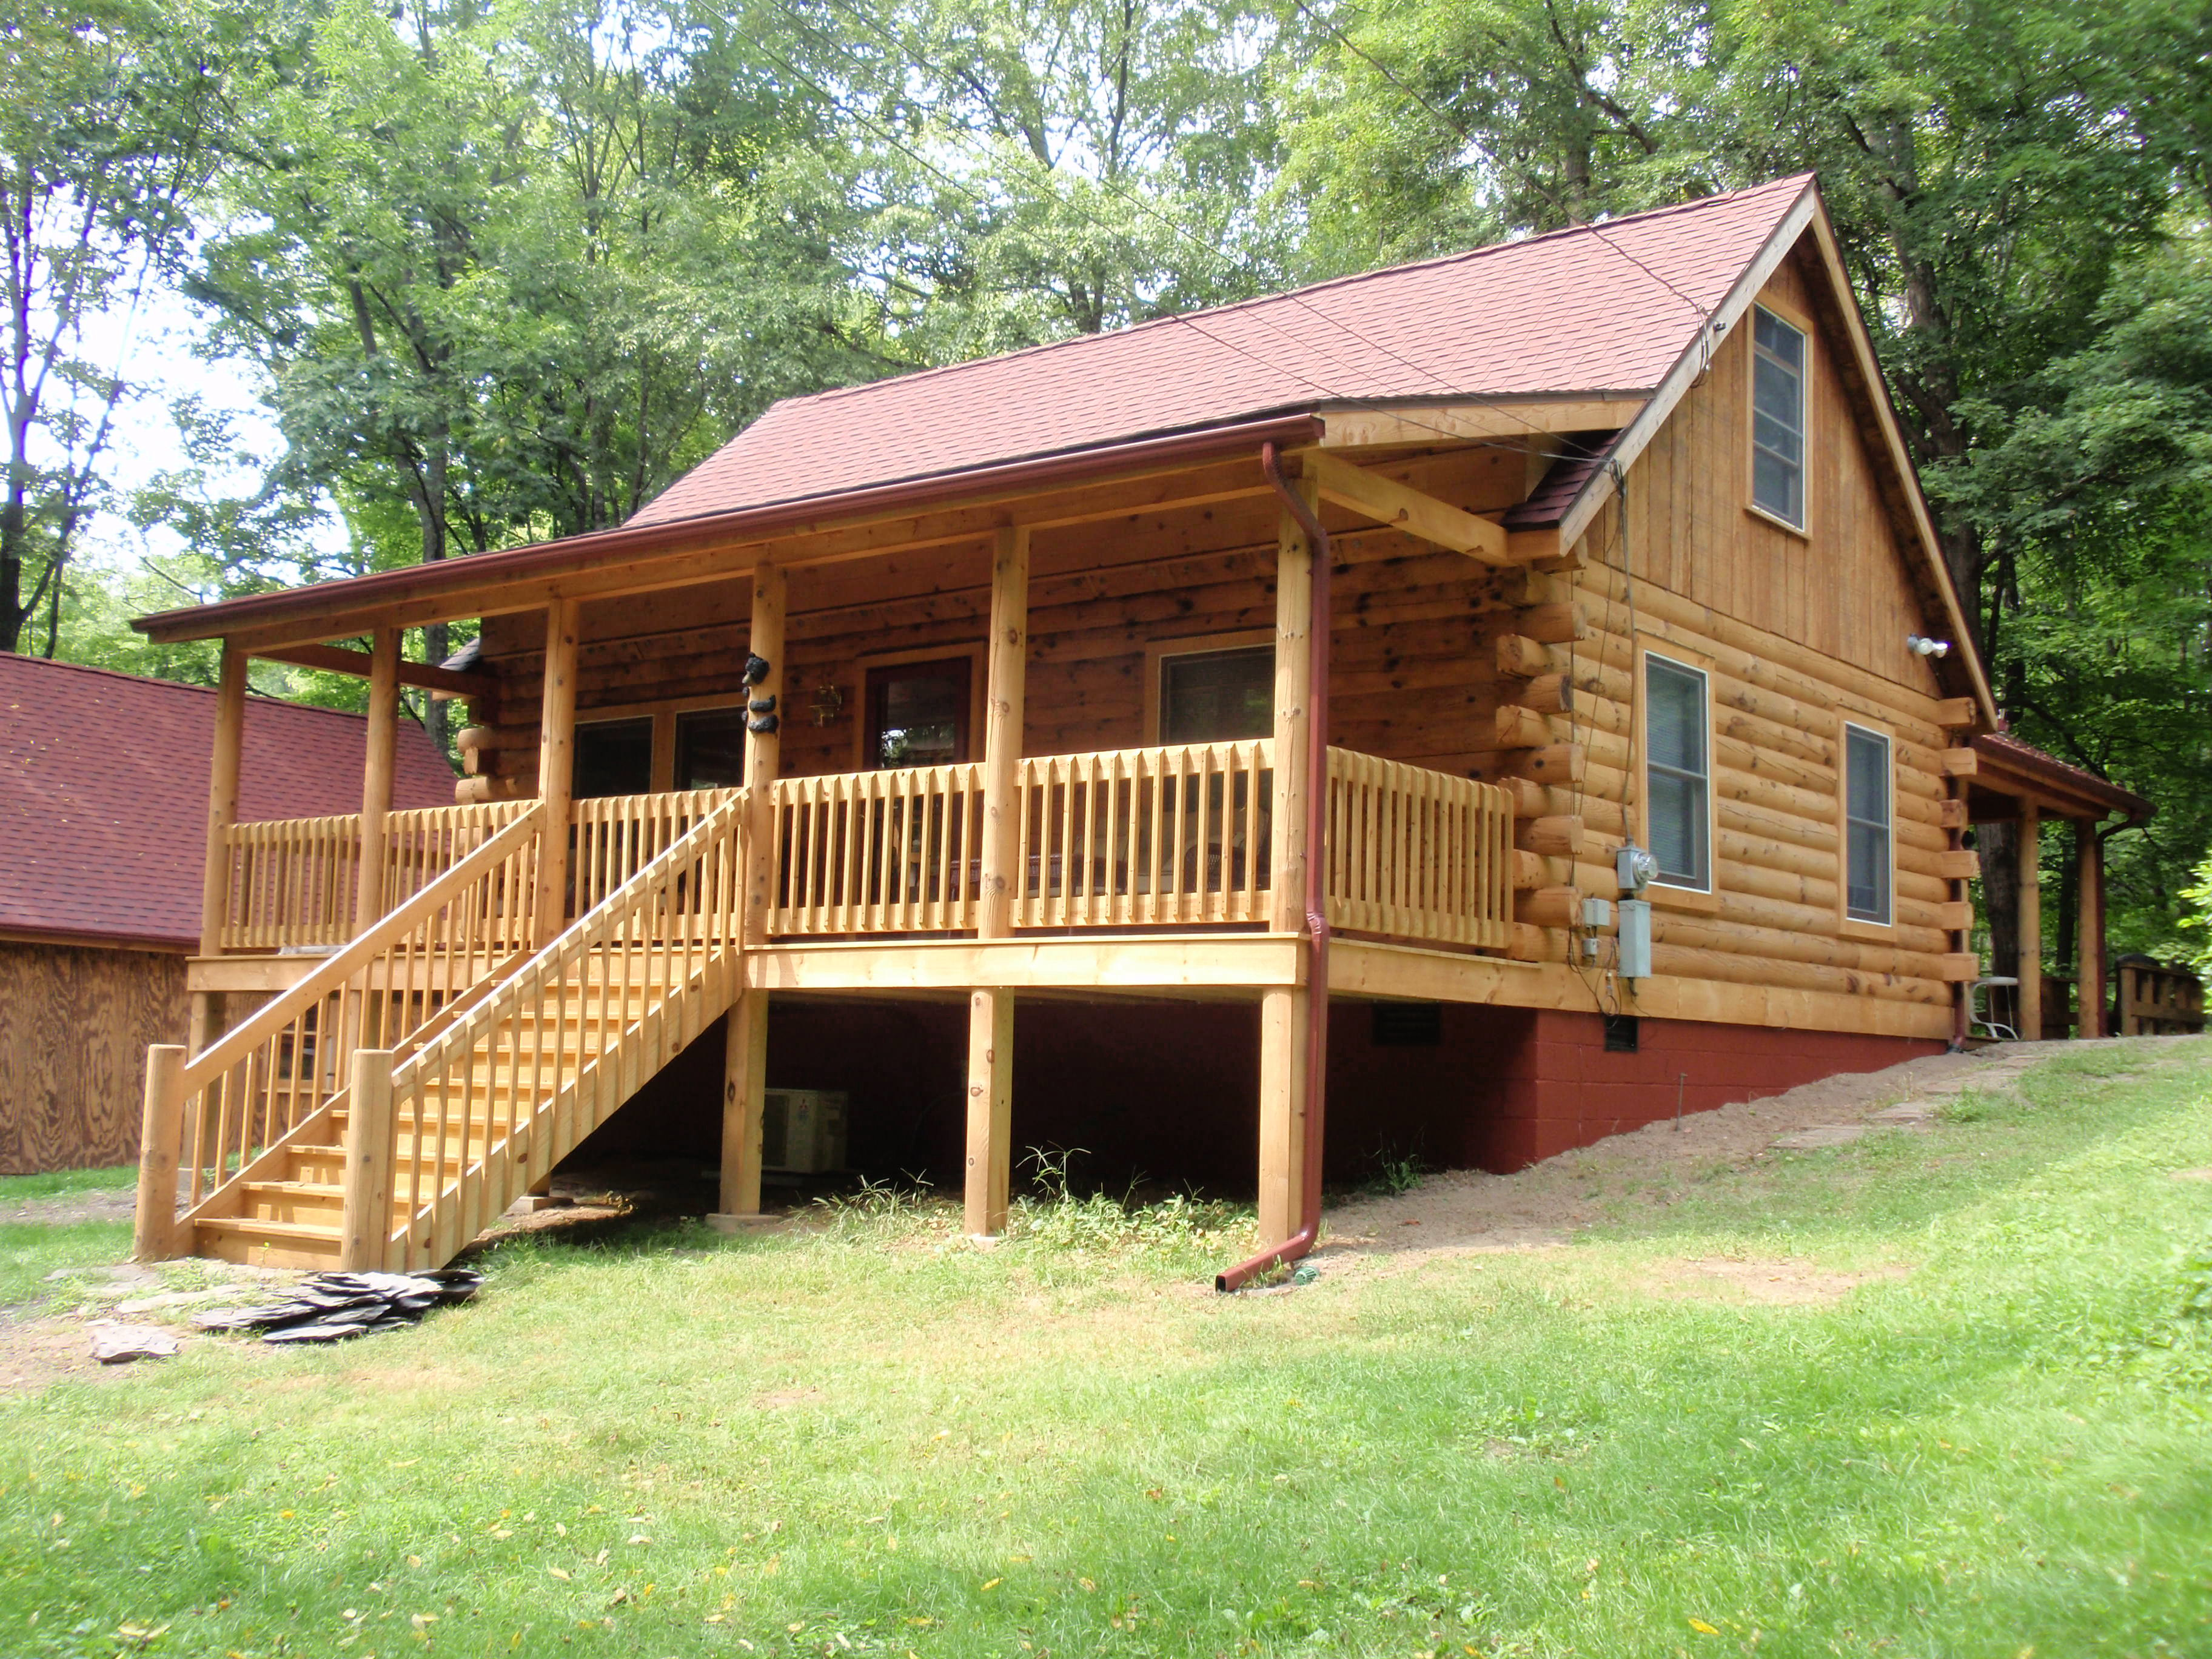 Pictures Of Appalachian Homes Home Pictures